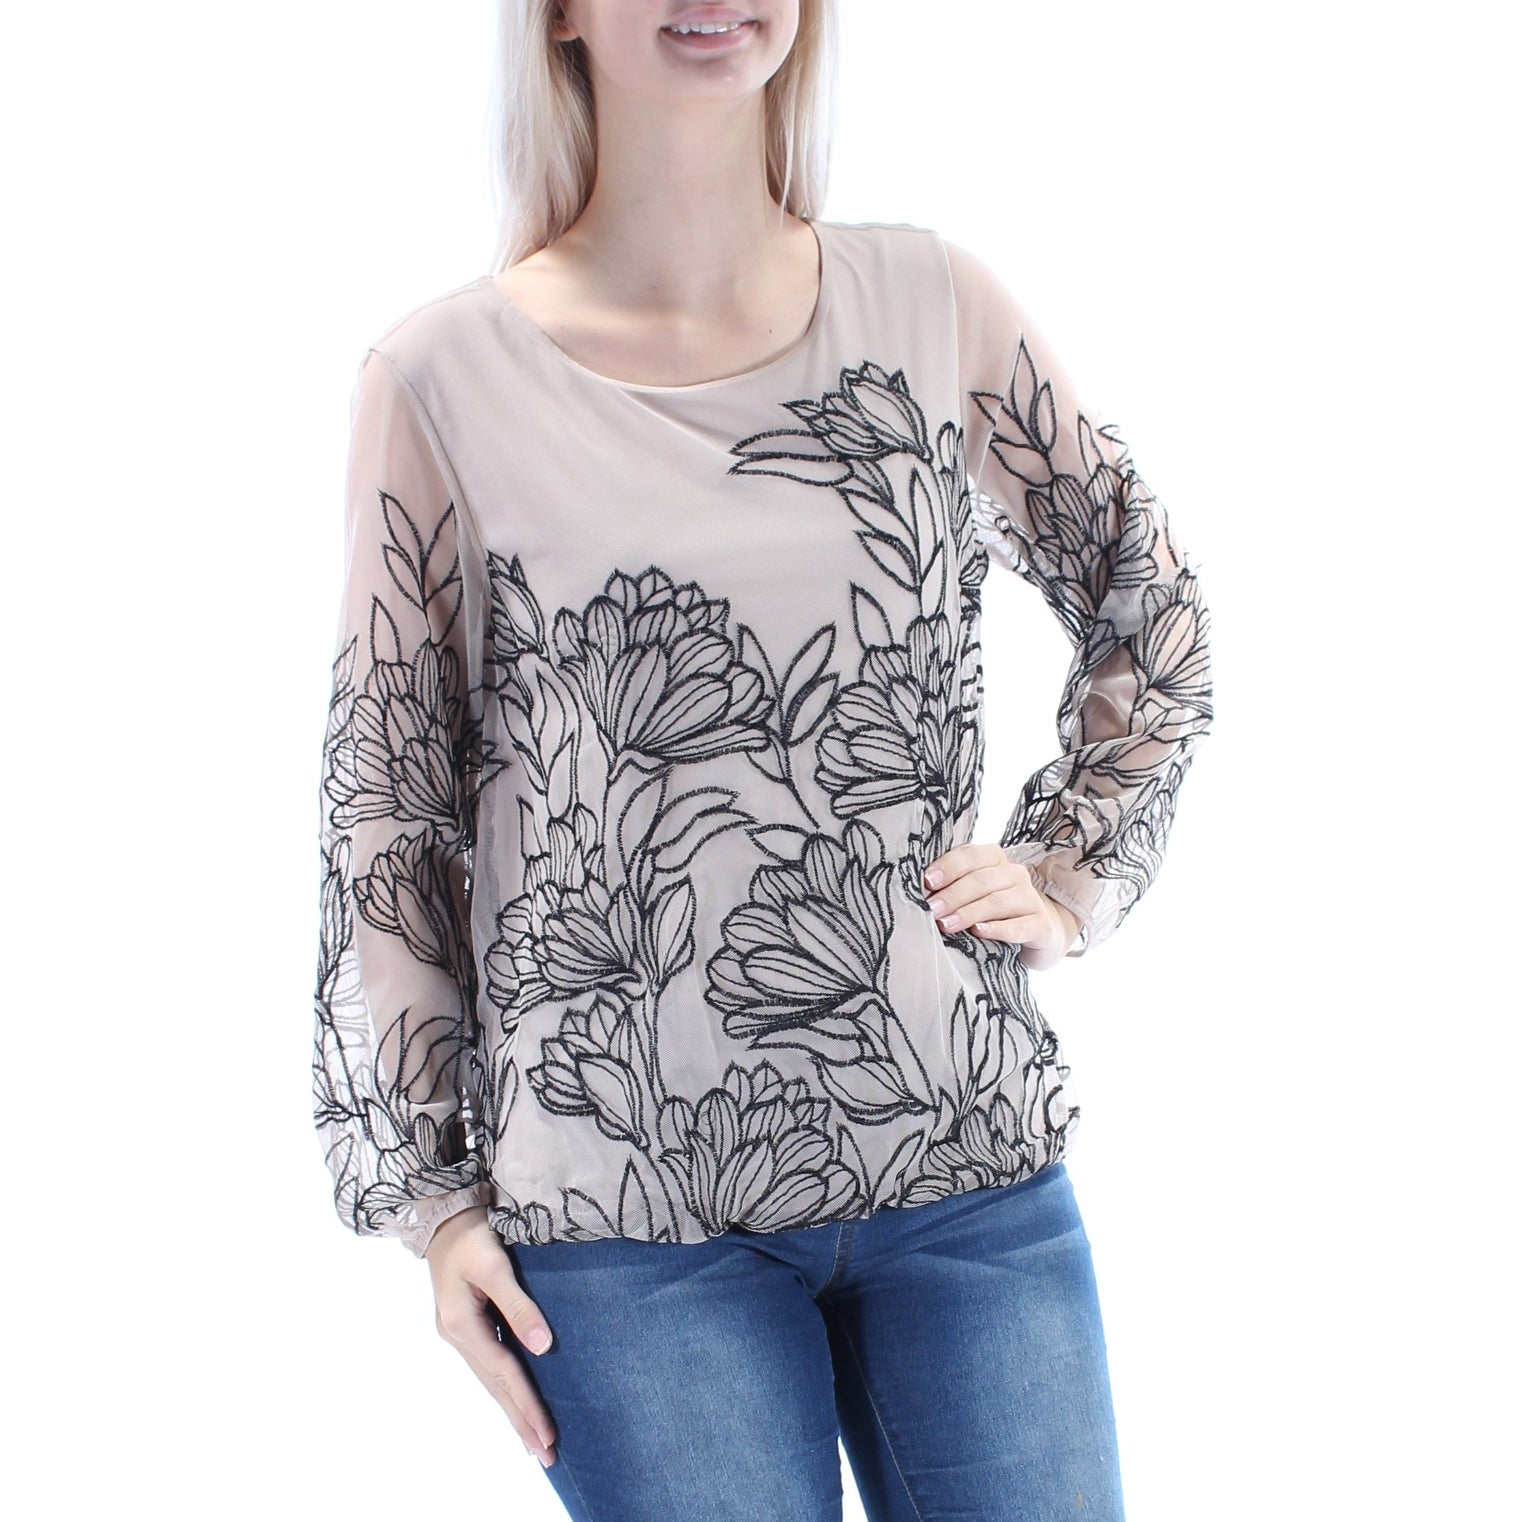 1ef049b53eb09f Alfani Tops | Find Great Women's Clothing Deals Shopping at Overstock